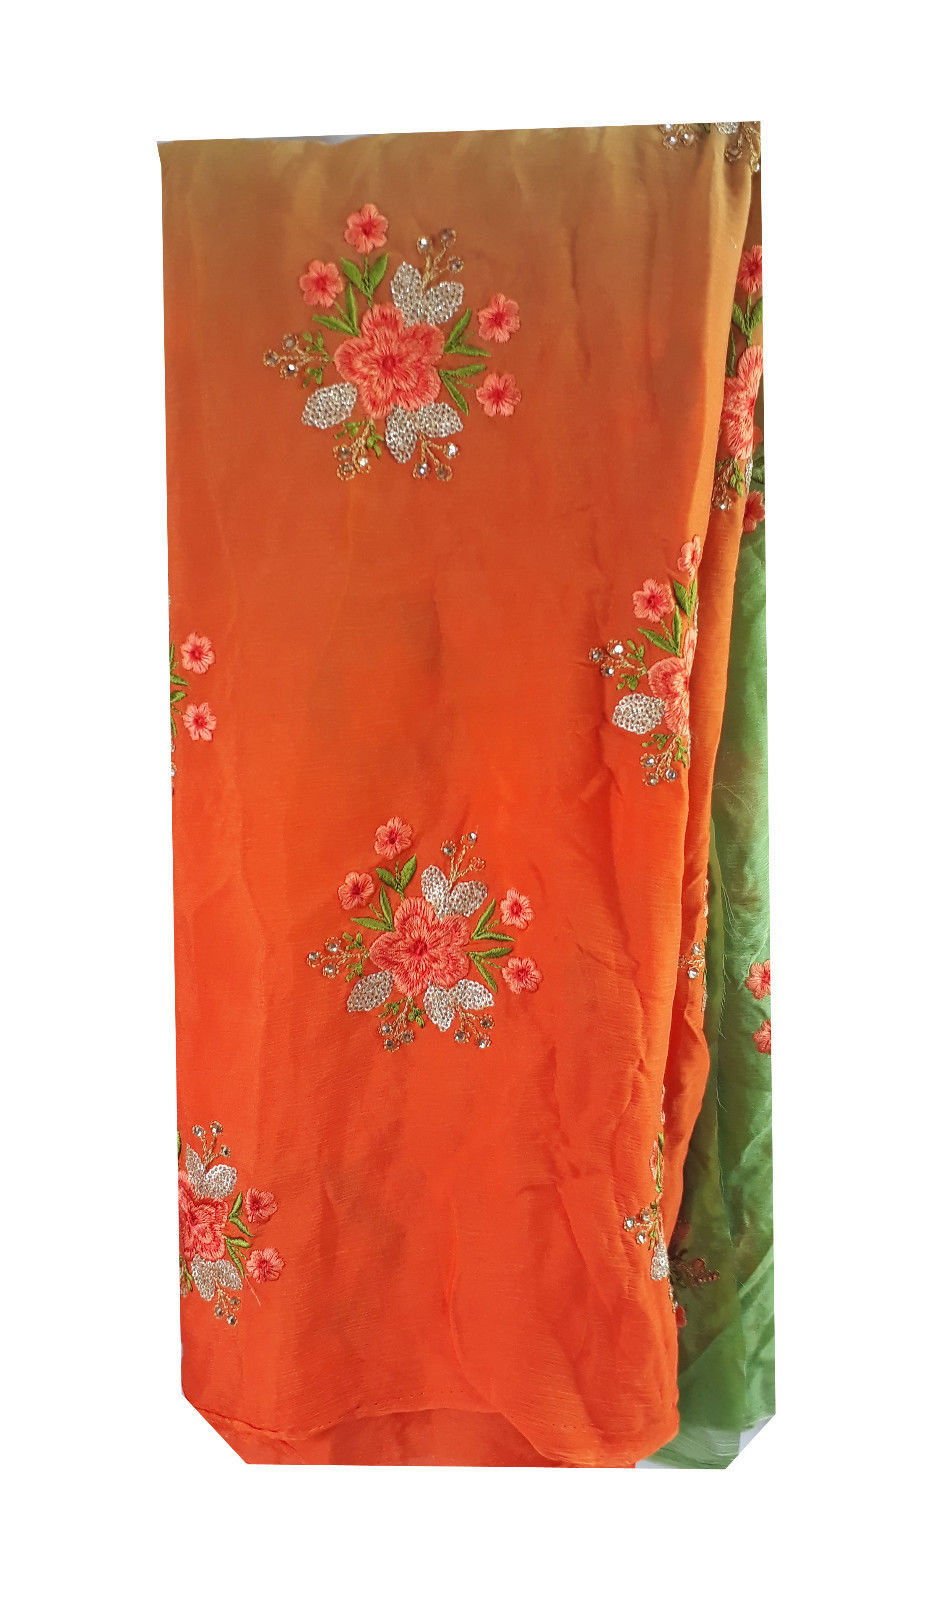 embroidery beads online embroidery fabric suppliers Chiffon Orange, Green, Gold 44 inches Wide 1715